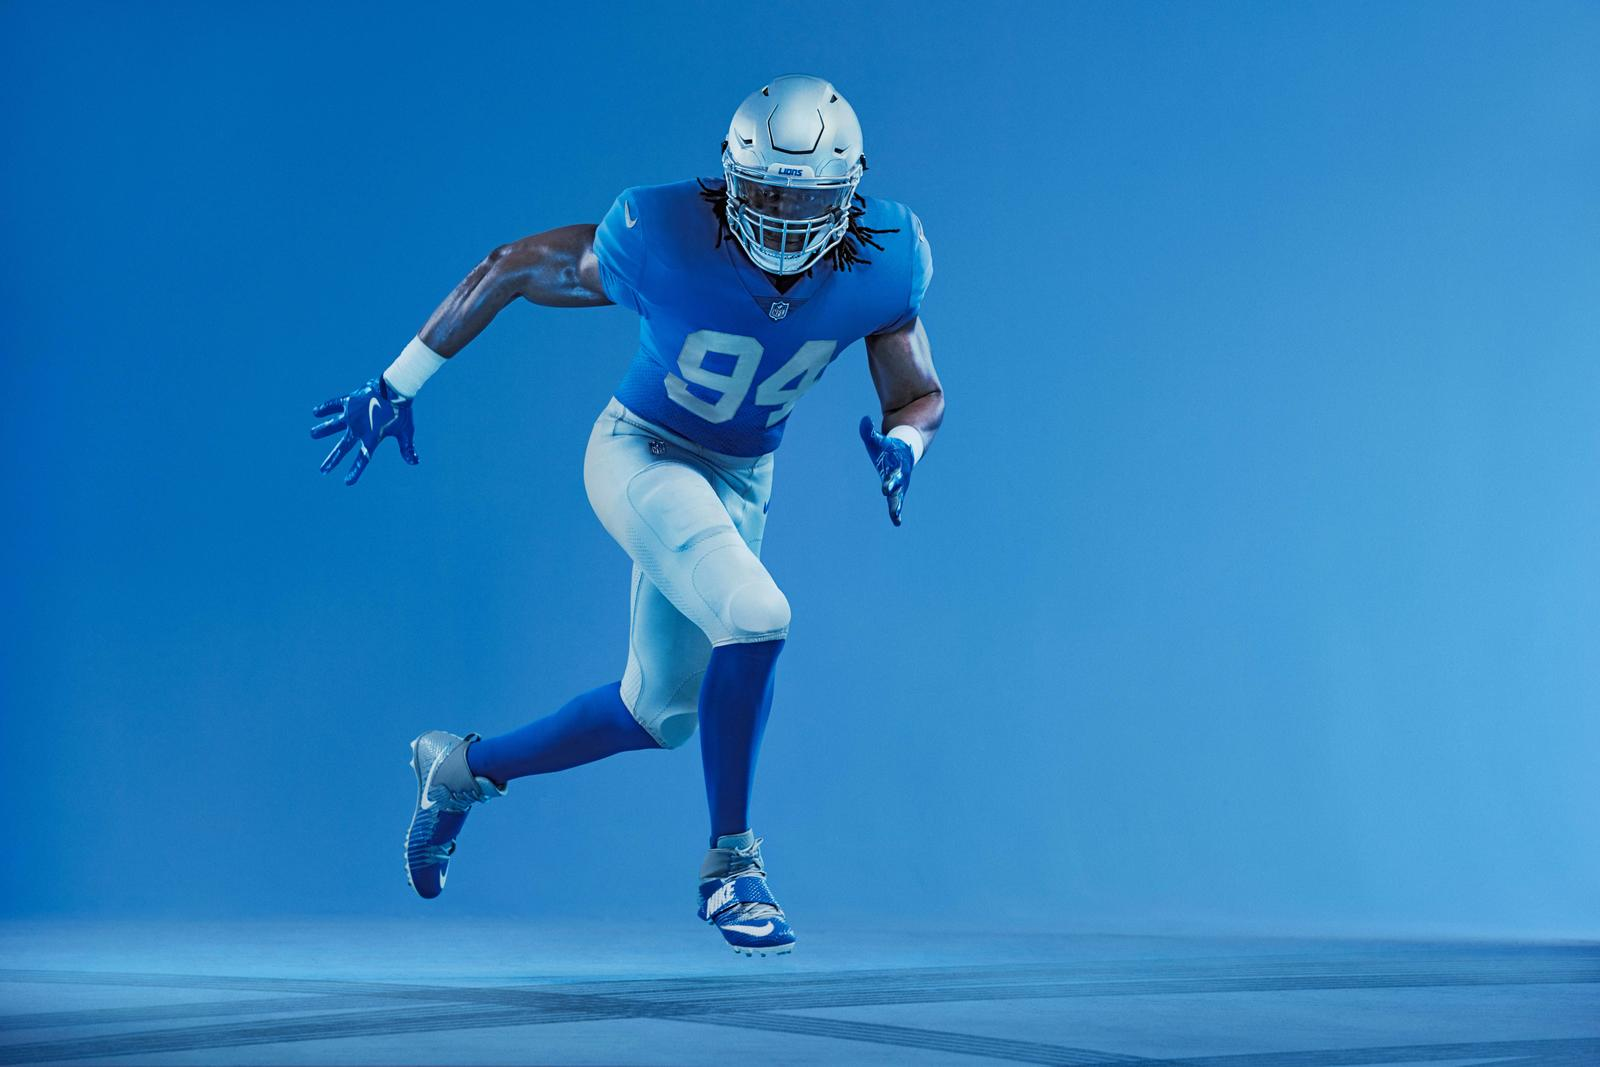 detroit lions uniforms nike store